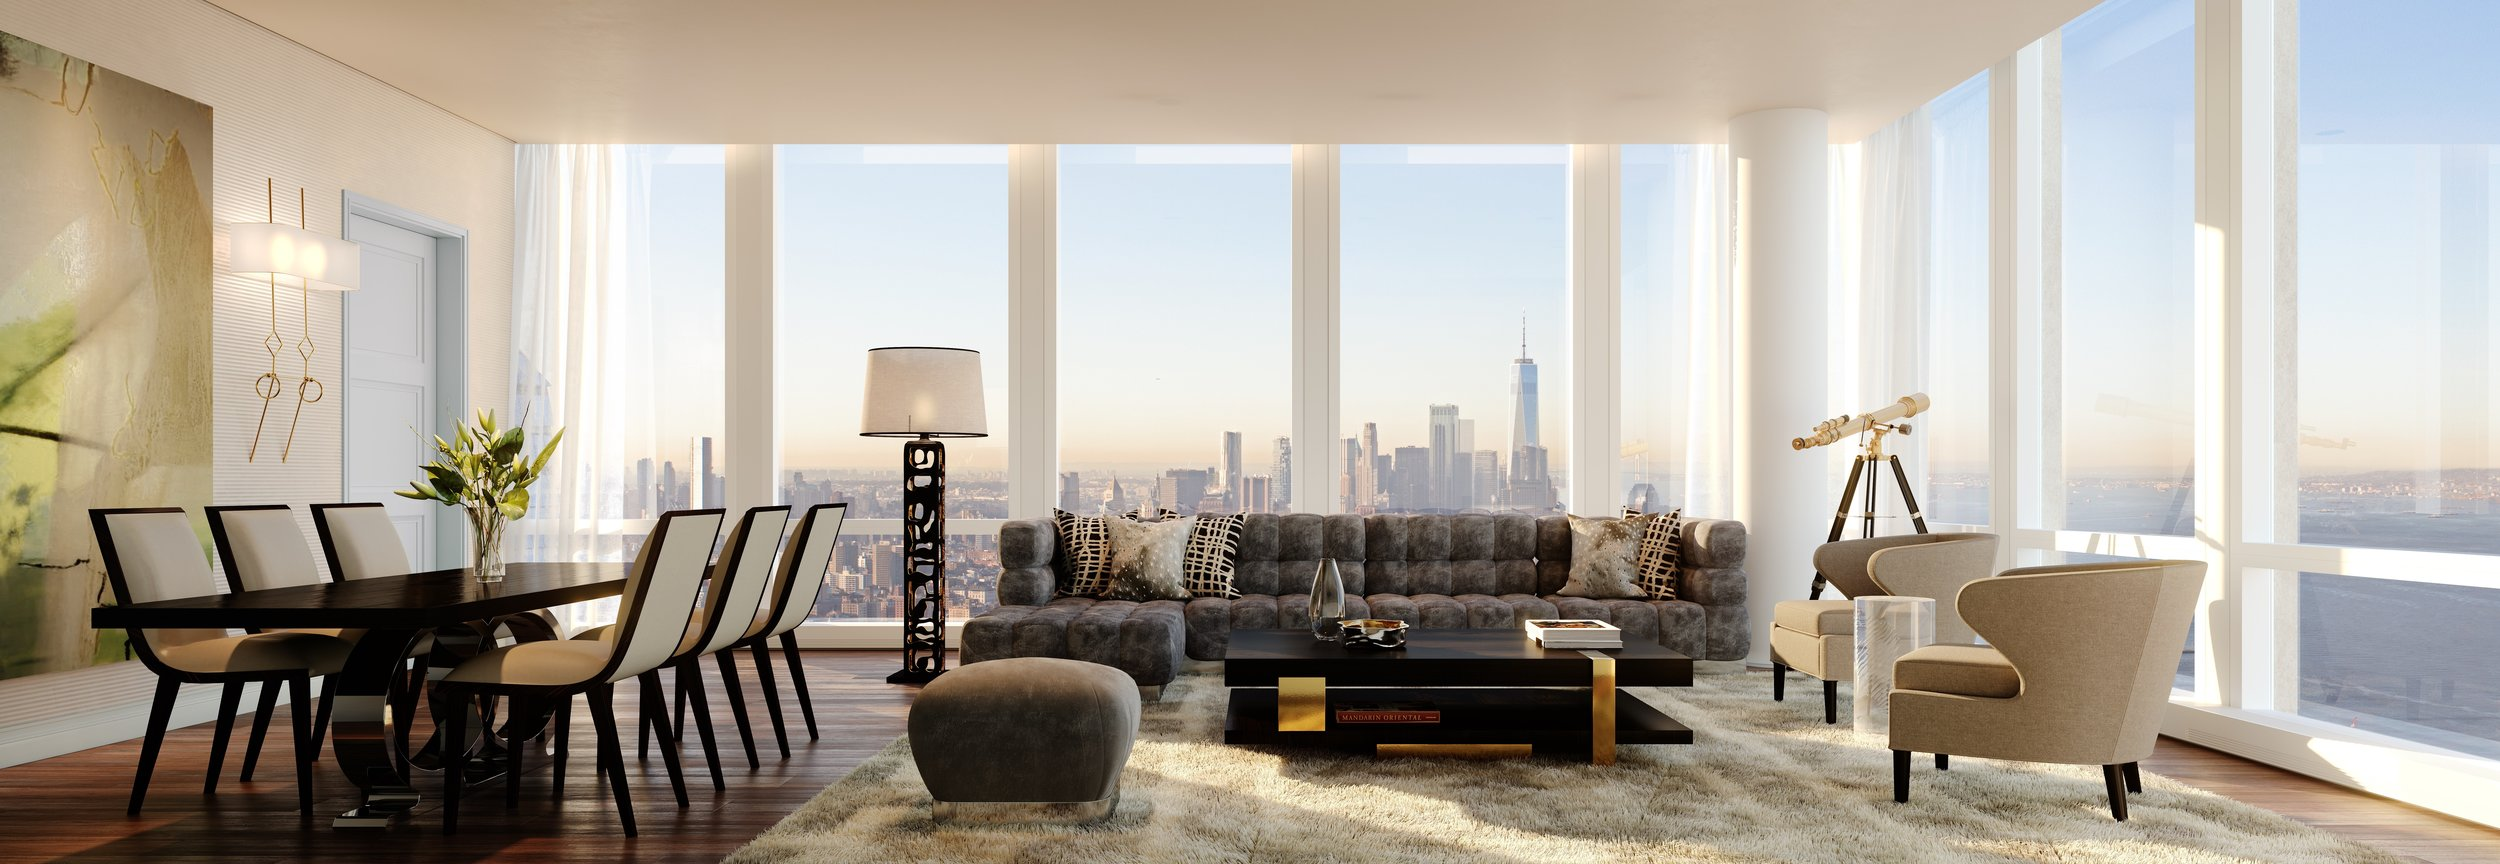 35 Hudson Yards Condo Related Oxford